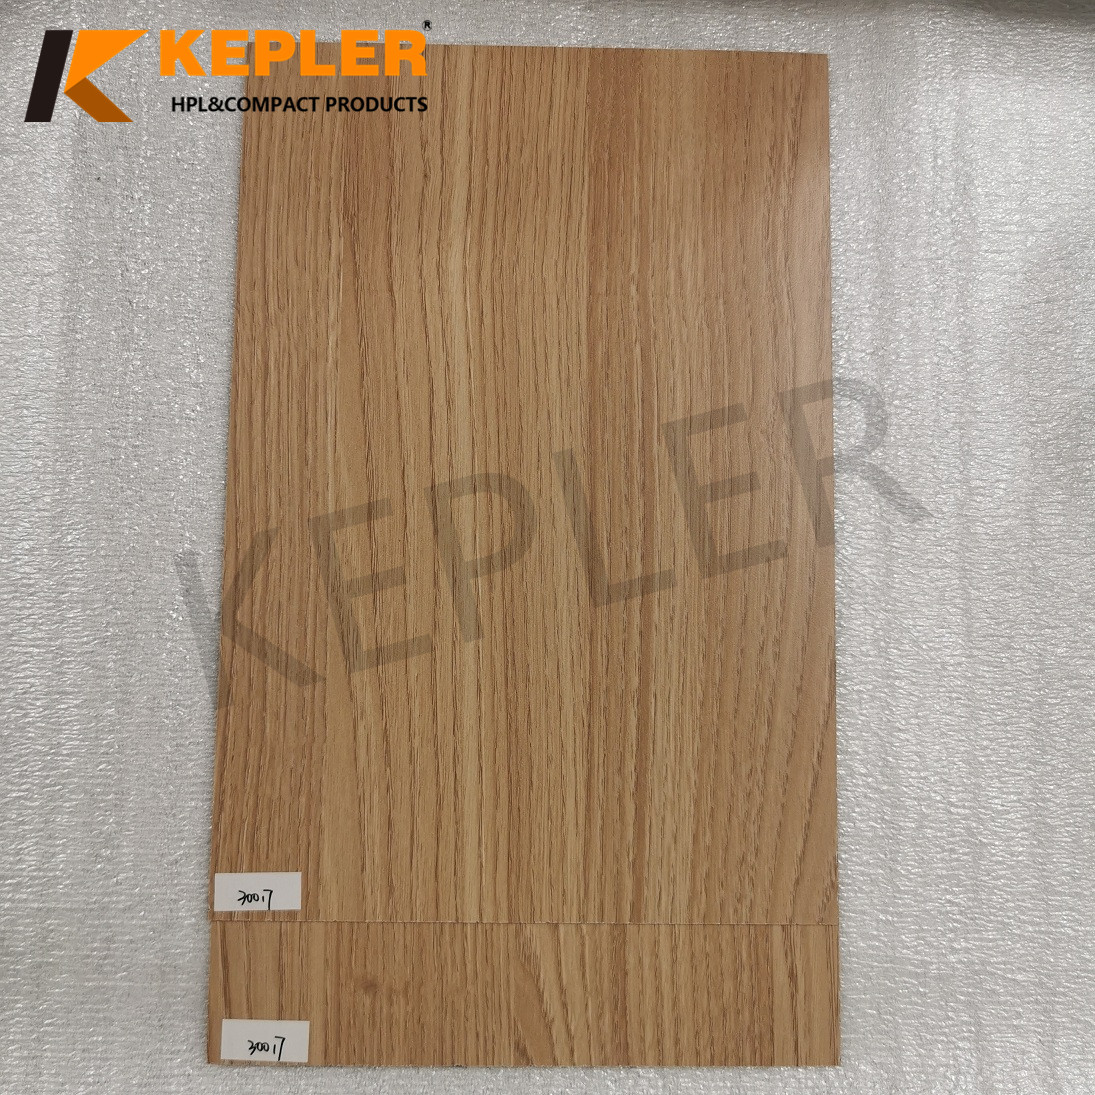 Kepler 0.7mm Wood Grain HPL Sheet Compact Laminate Board